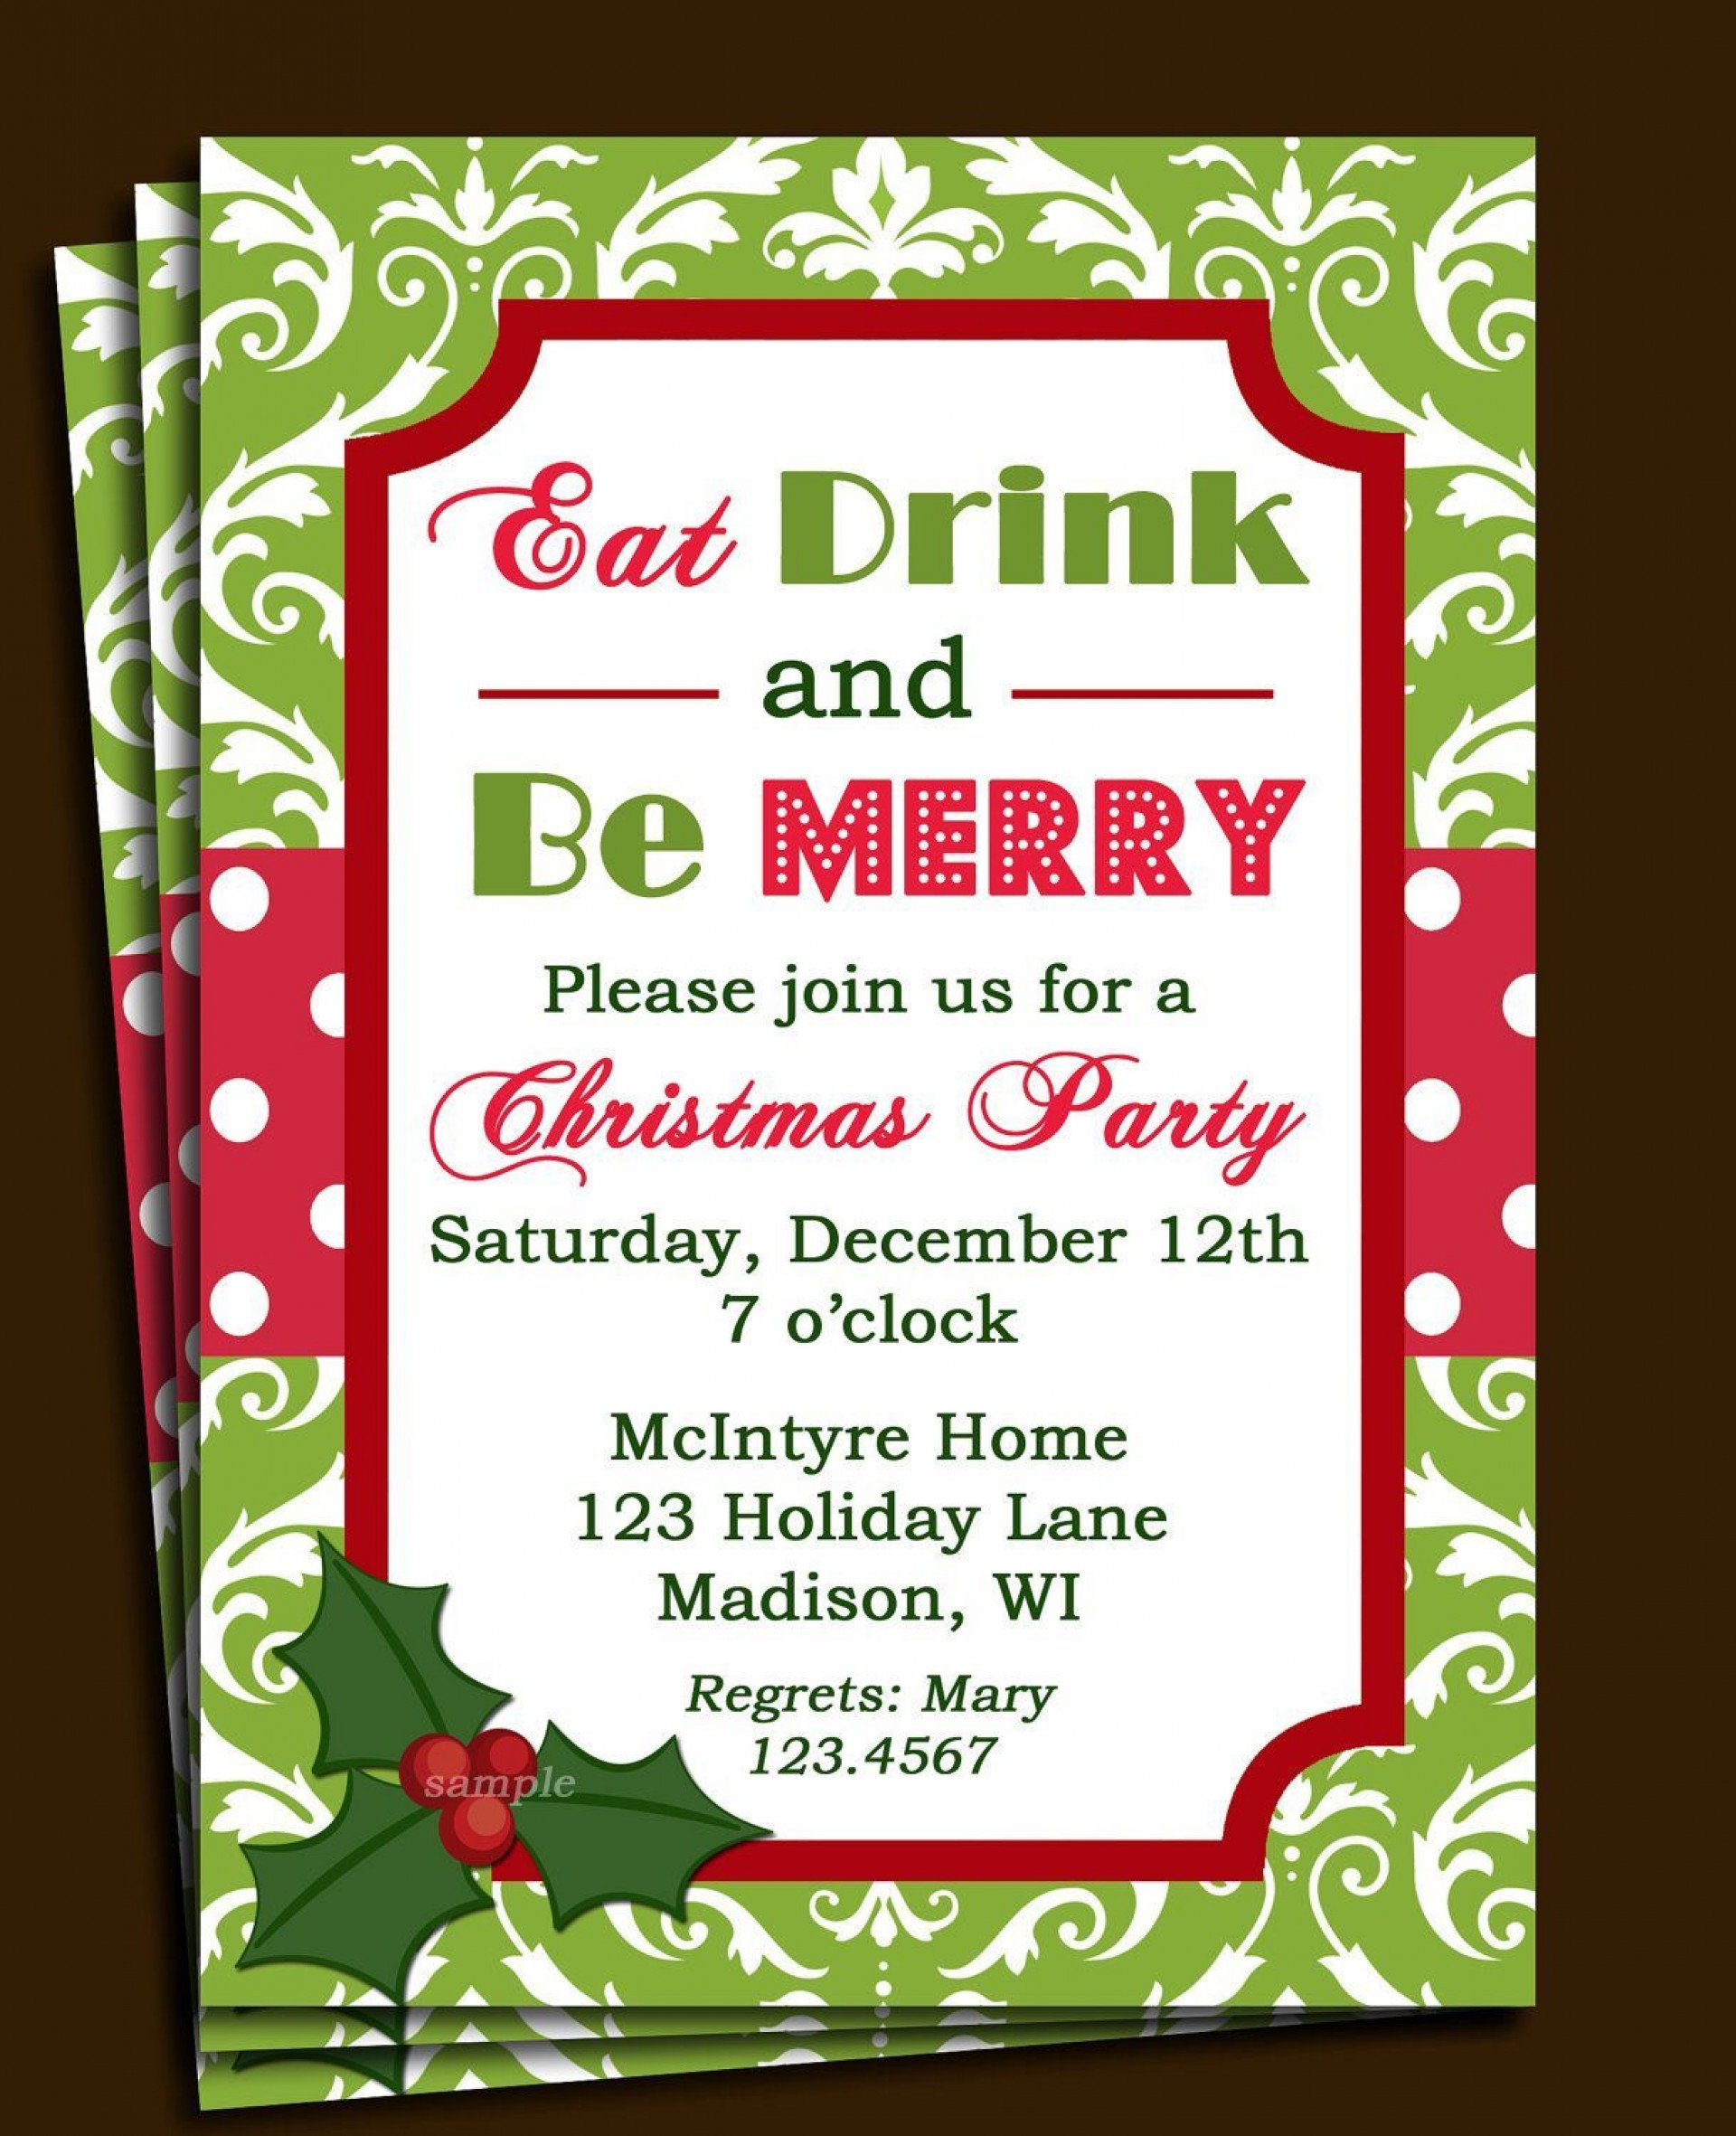 005 Marvelou Office Christma Party Invitation Wording Sample Design  Holiday Example1920